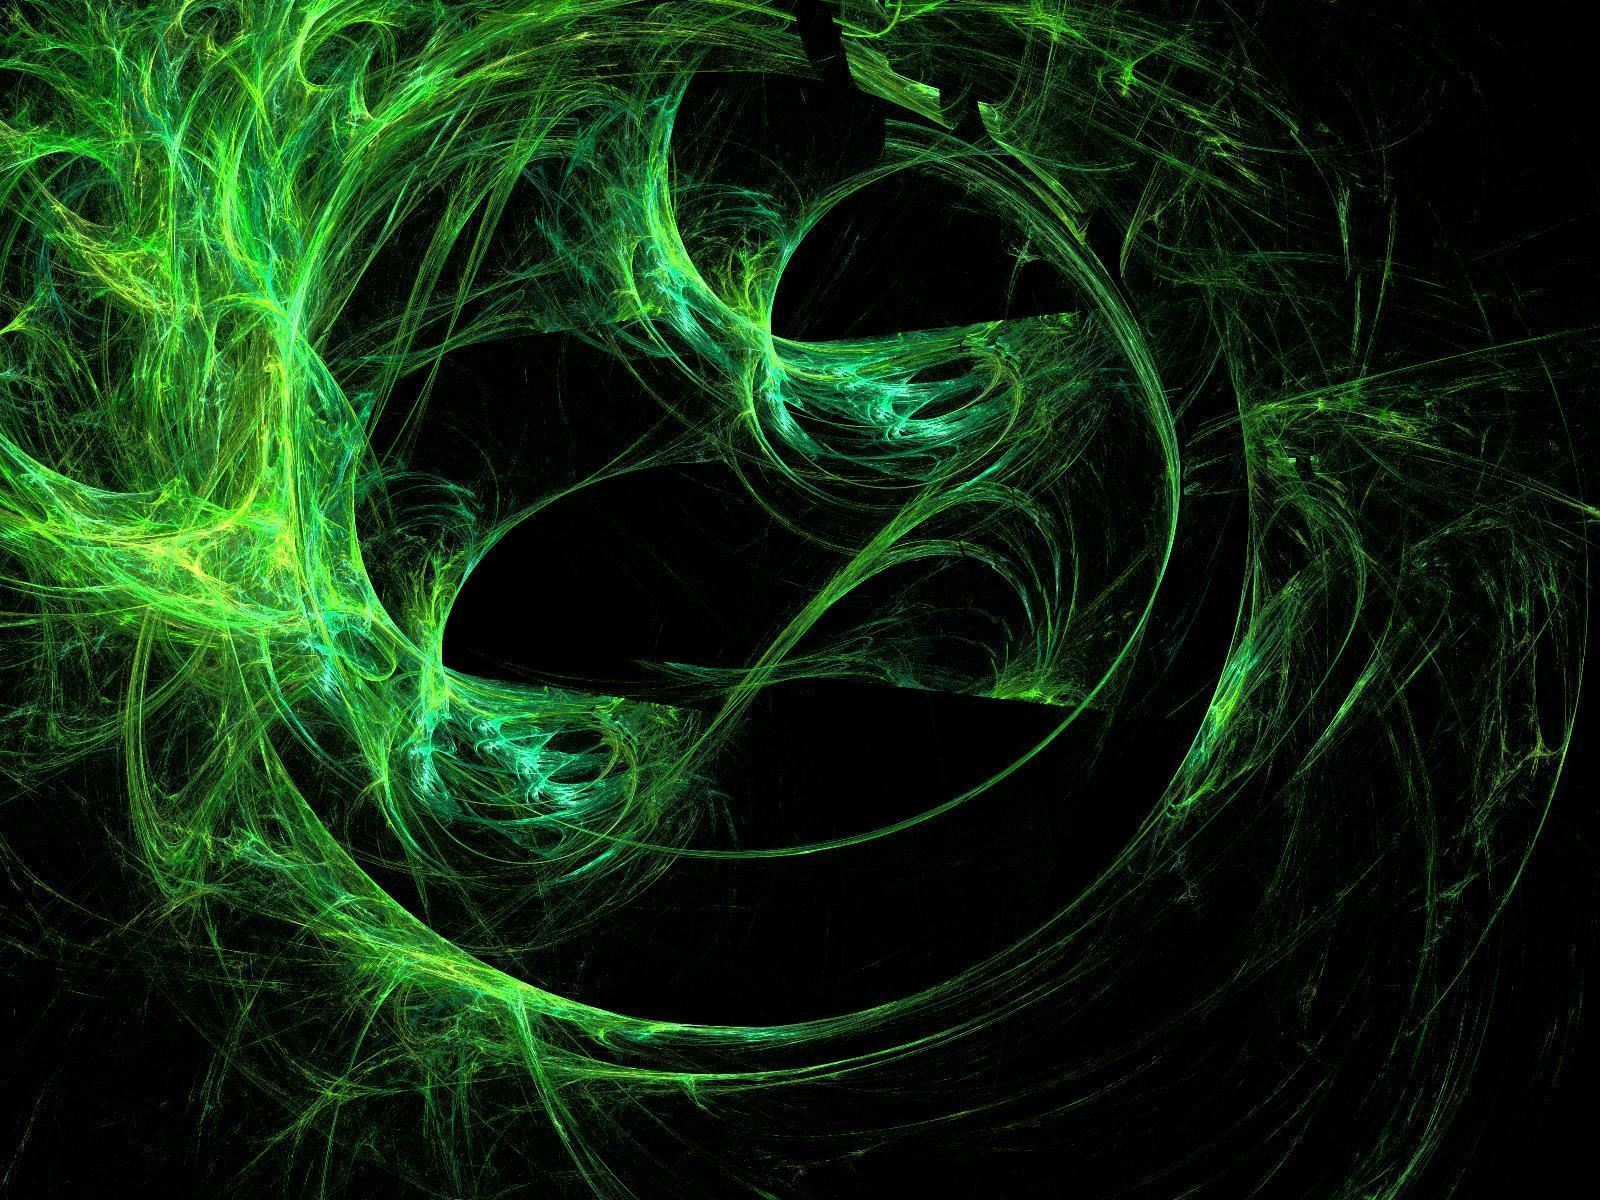 Wallpapers For > Lime Green And Black Backgrounds